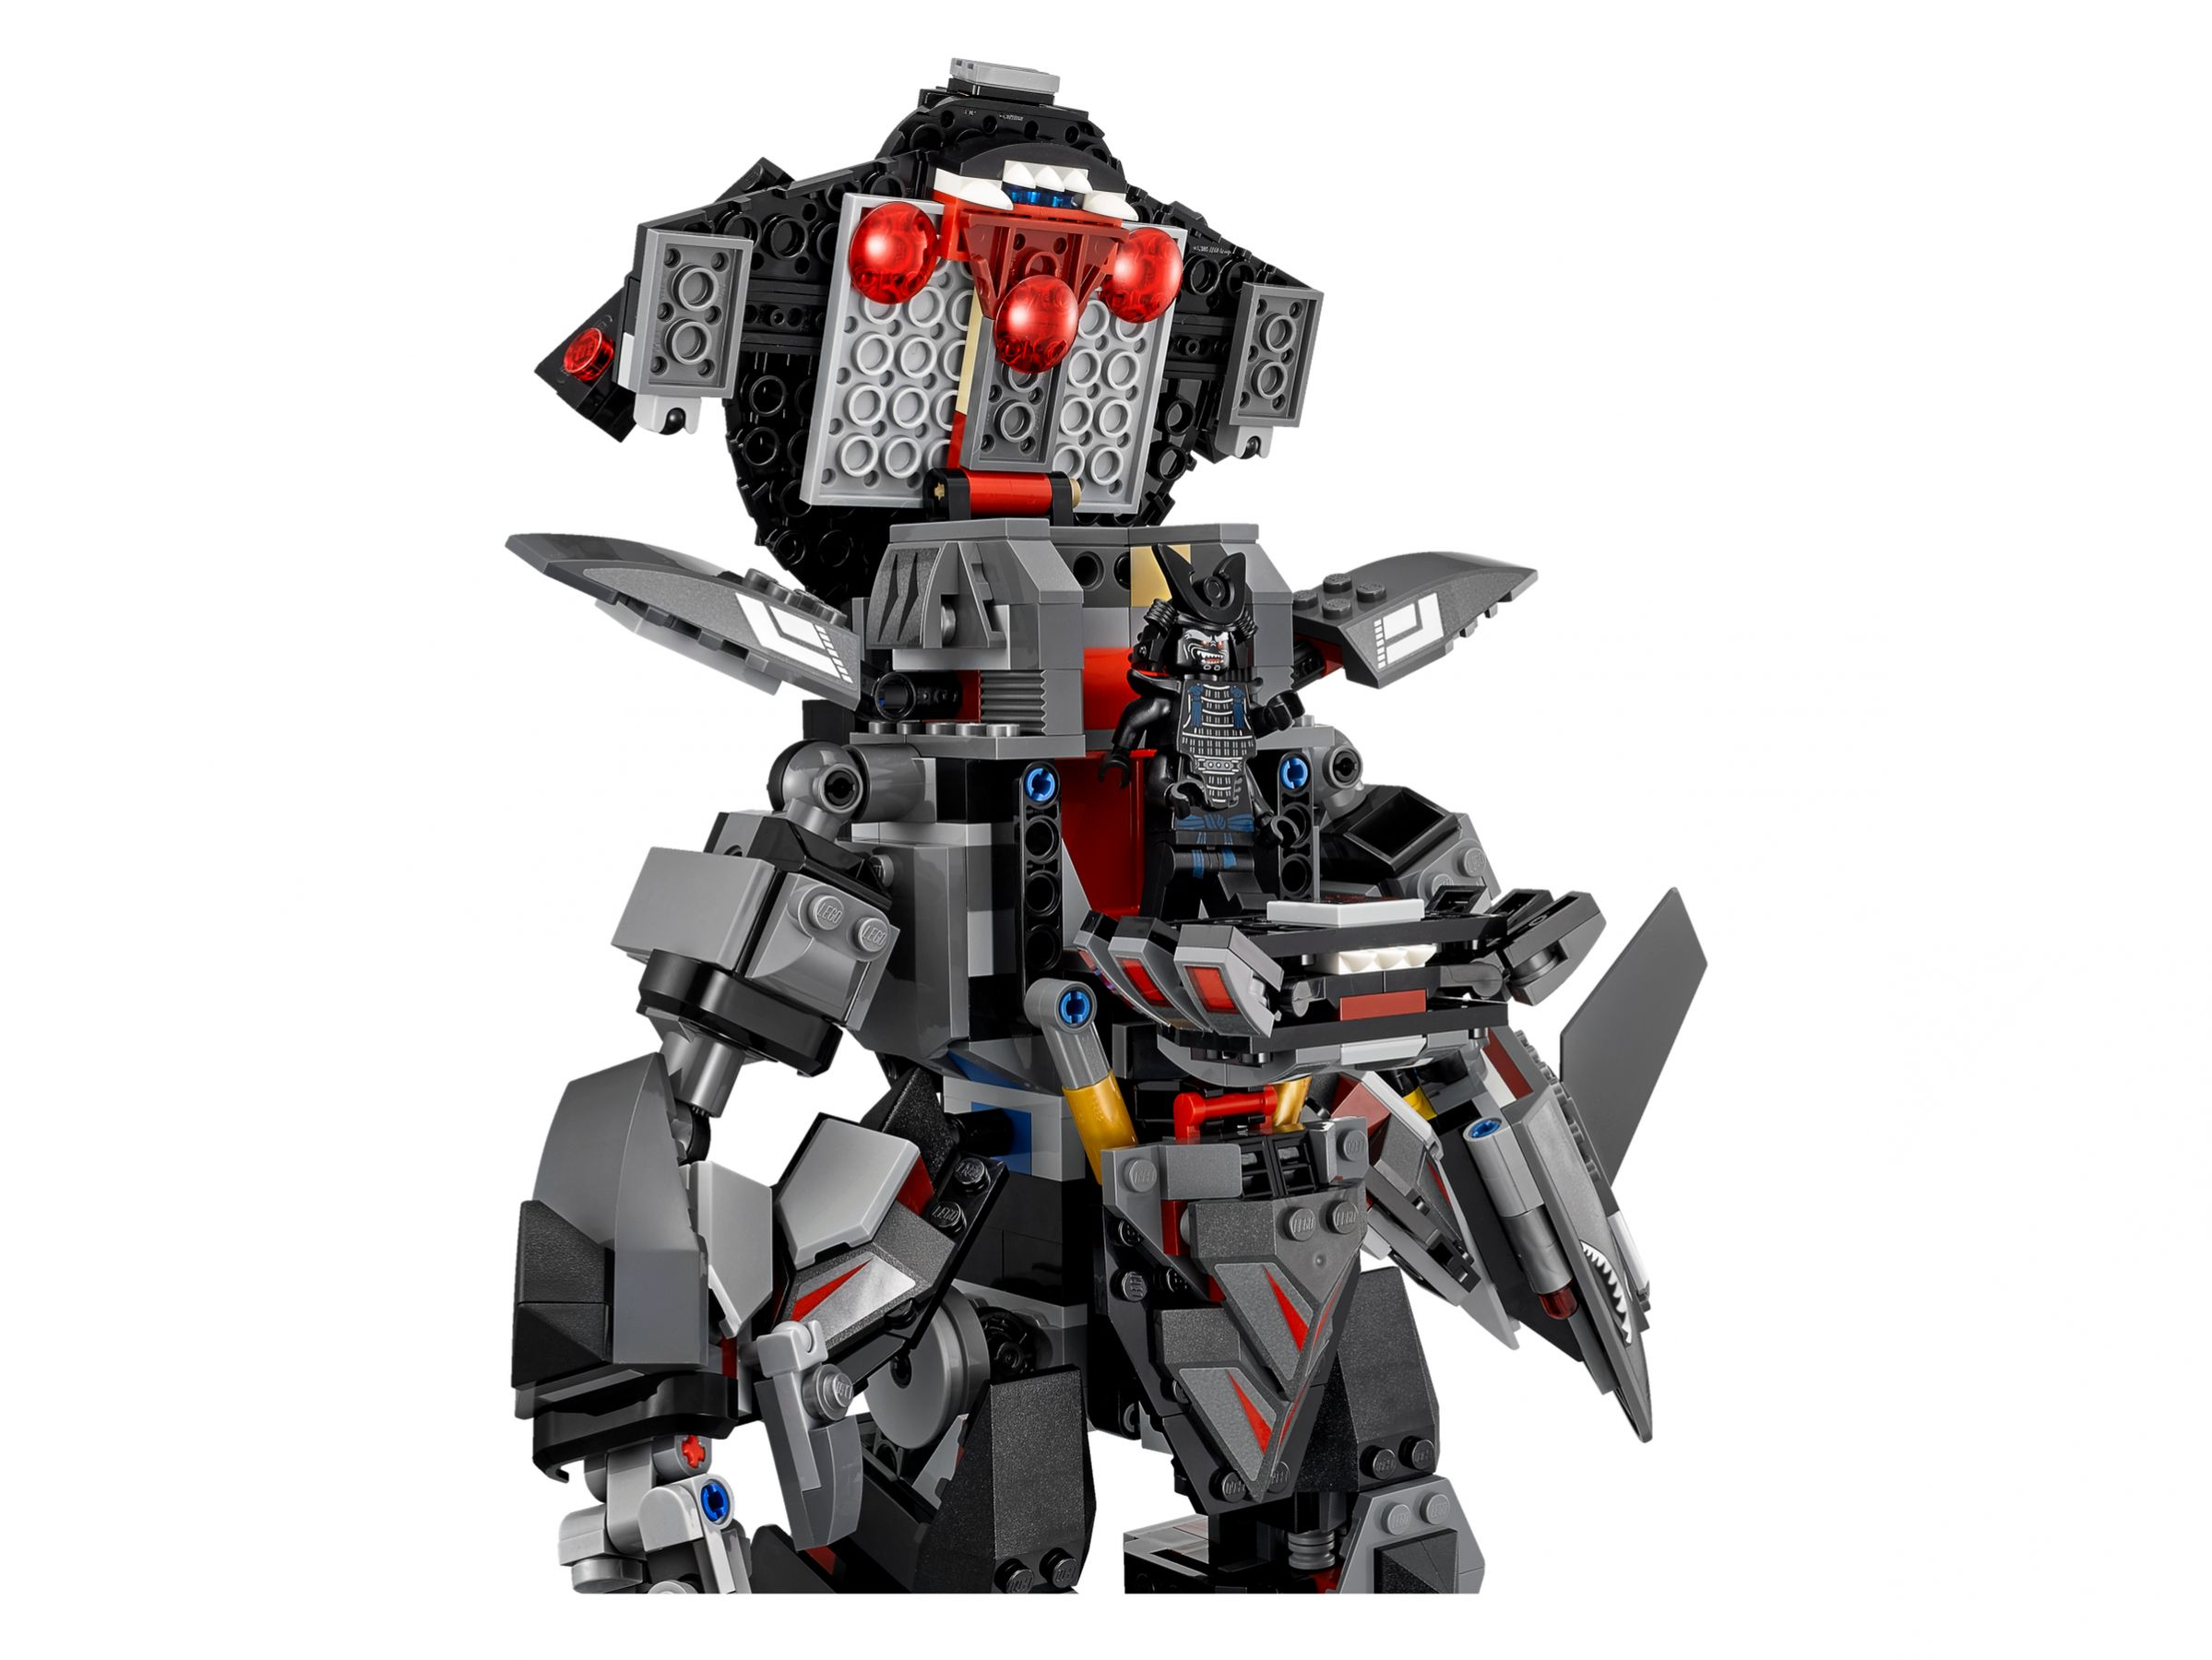 LEGO The LEGO Ninjago Movie 70613 Garmadon's Robo-Hai LEGO_70613_alt4.jpg